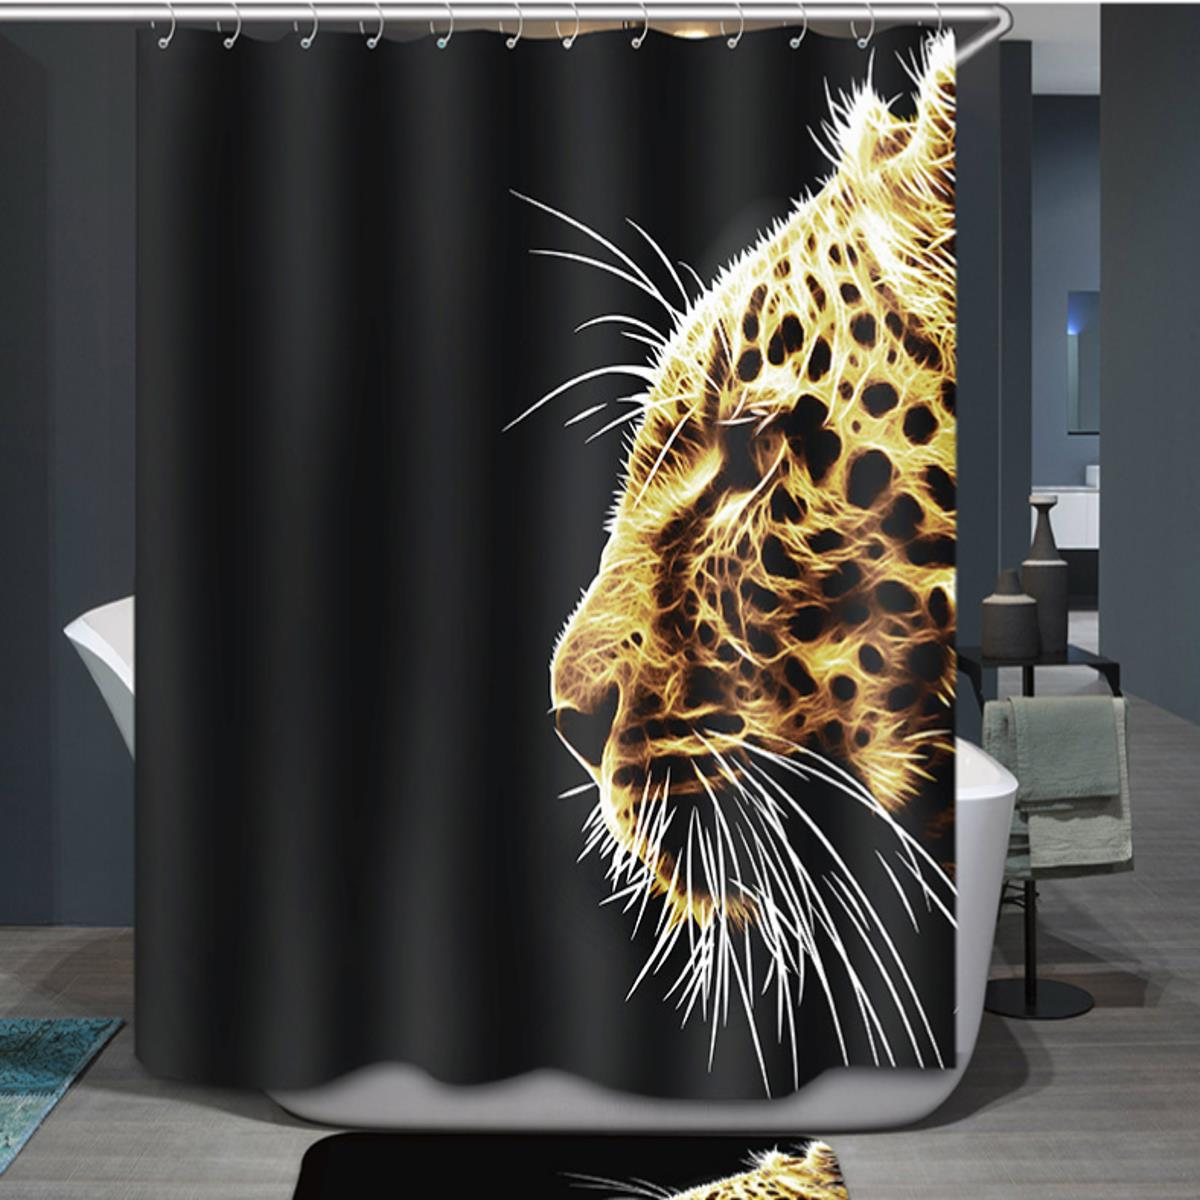 3D Water Cube Design Shower Curtain Bathroom Waterproof Fabric 72 Inch Set